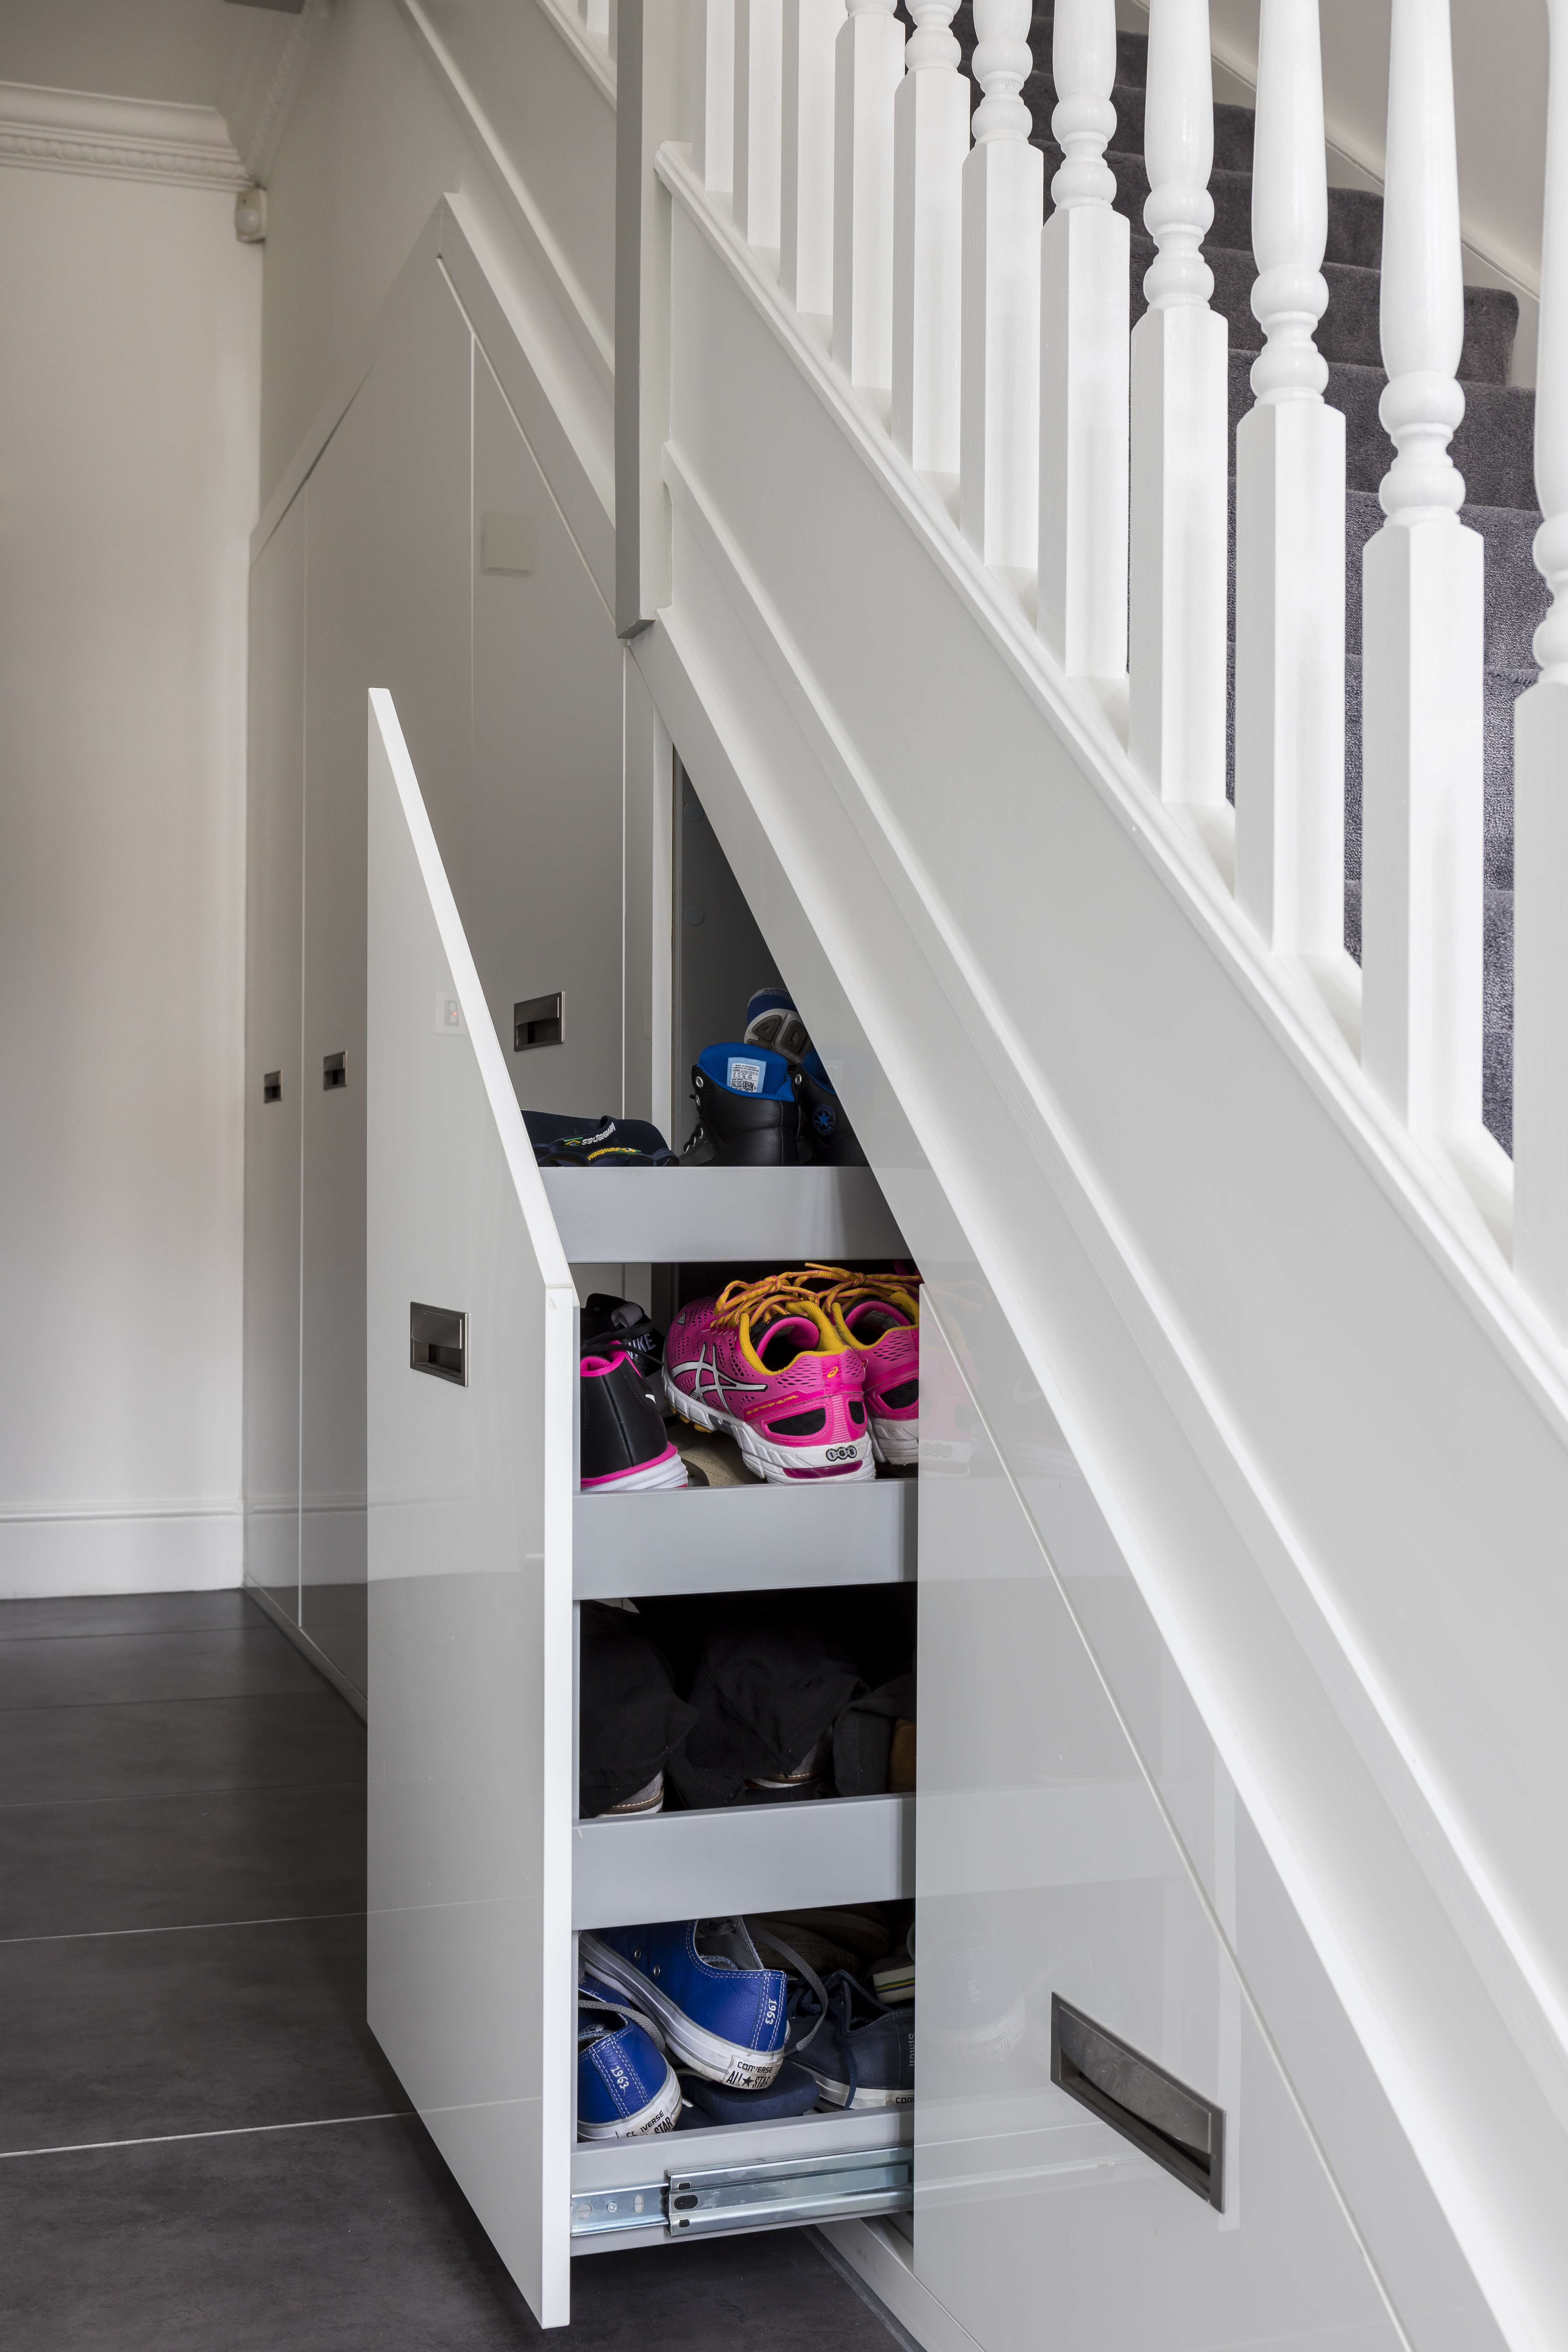 High gloss white under-stairs cabinets